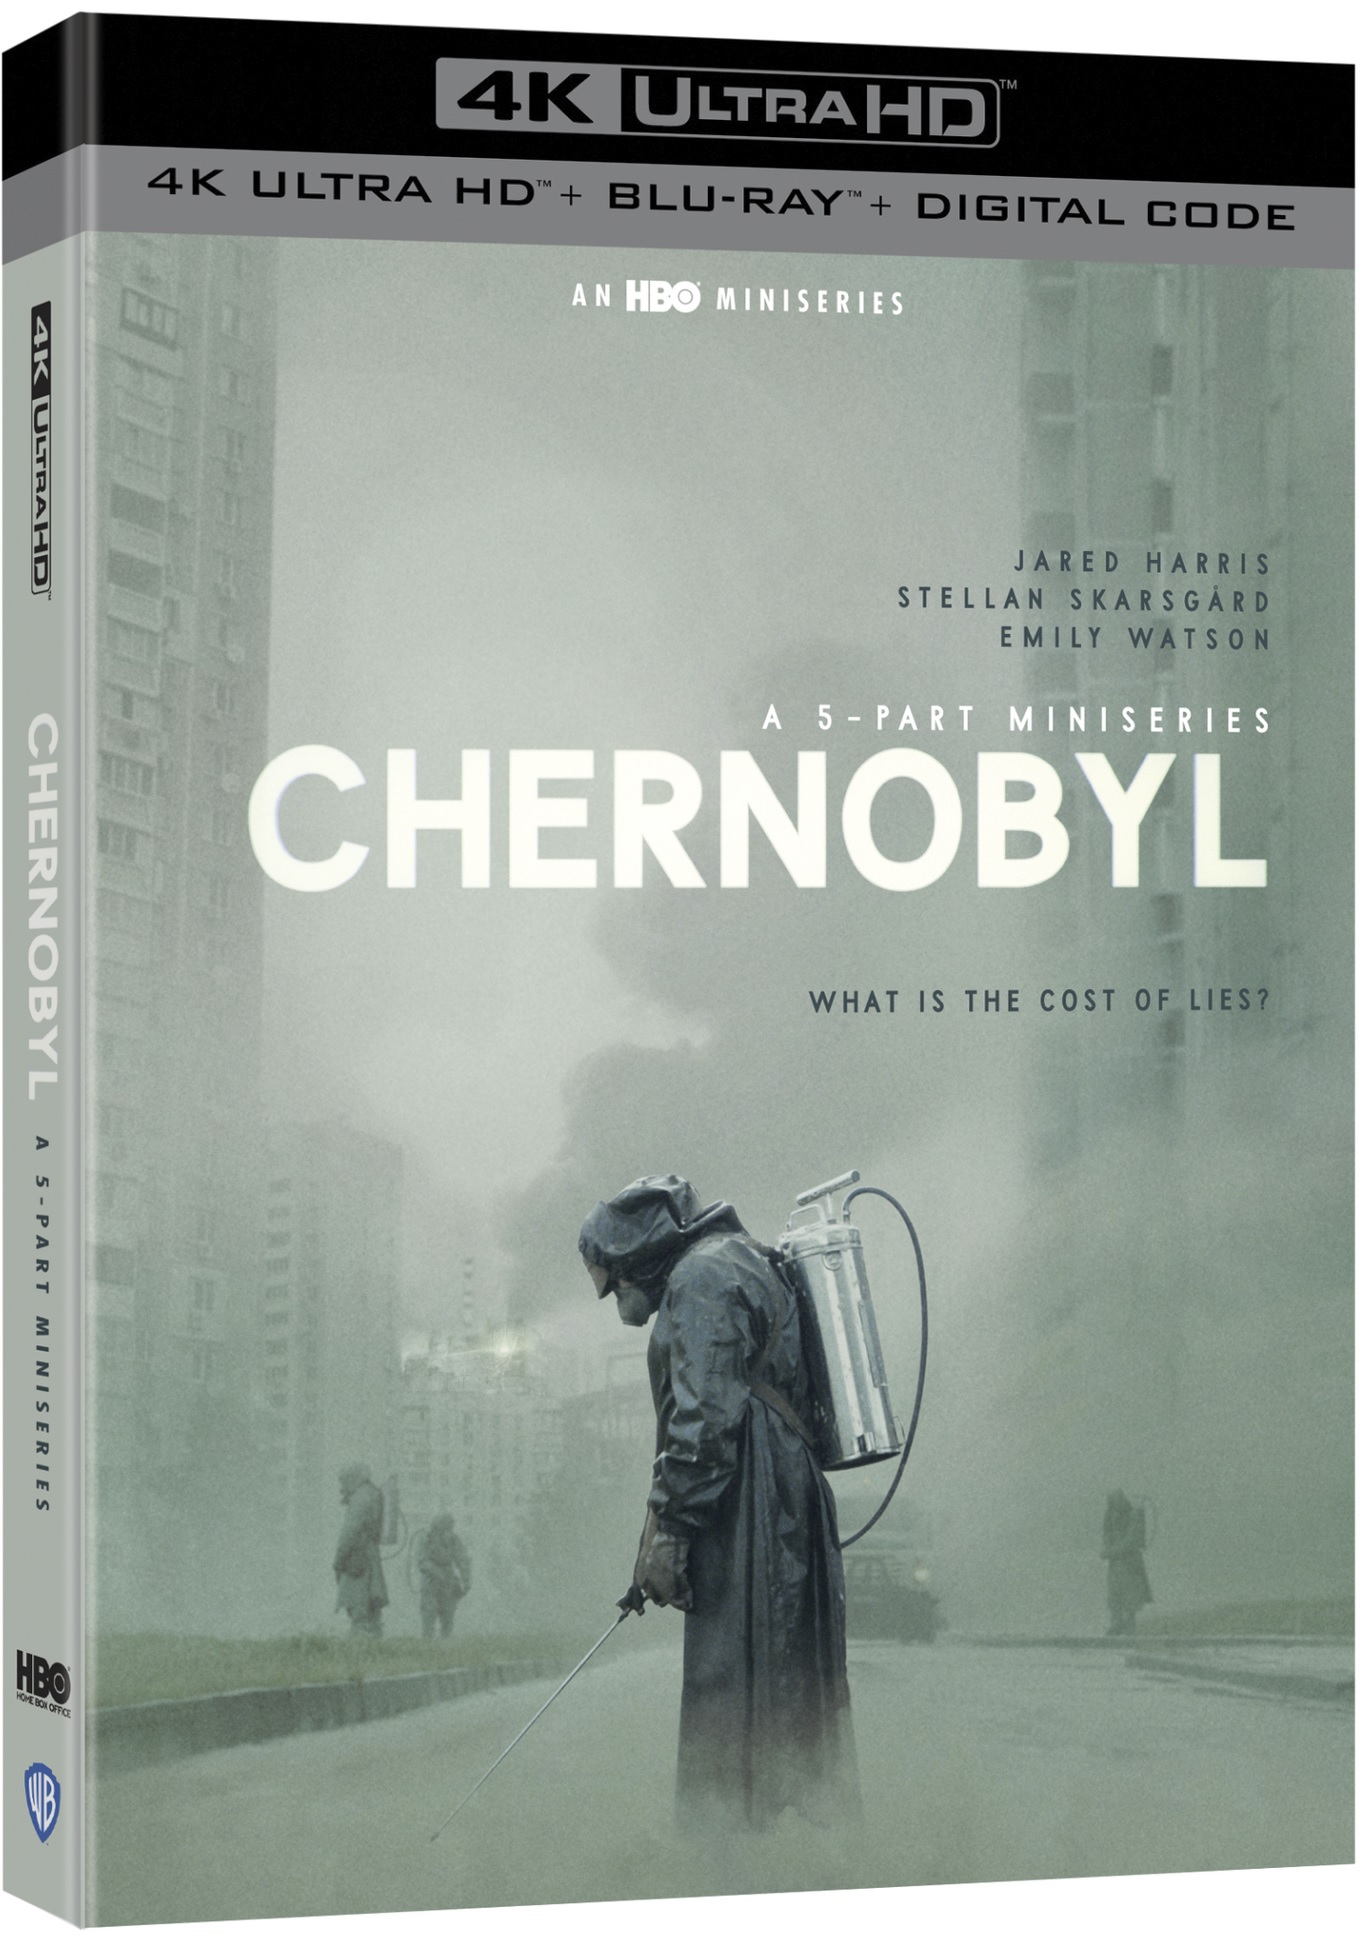 Chernobyl Blu-ray Review